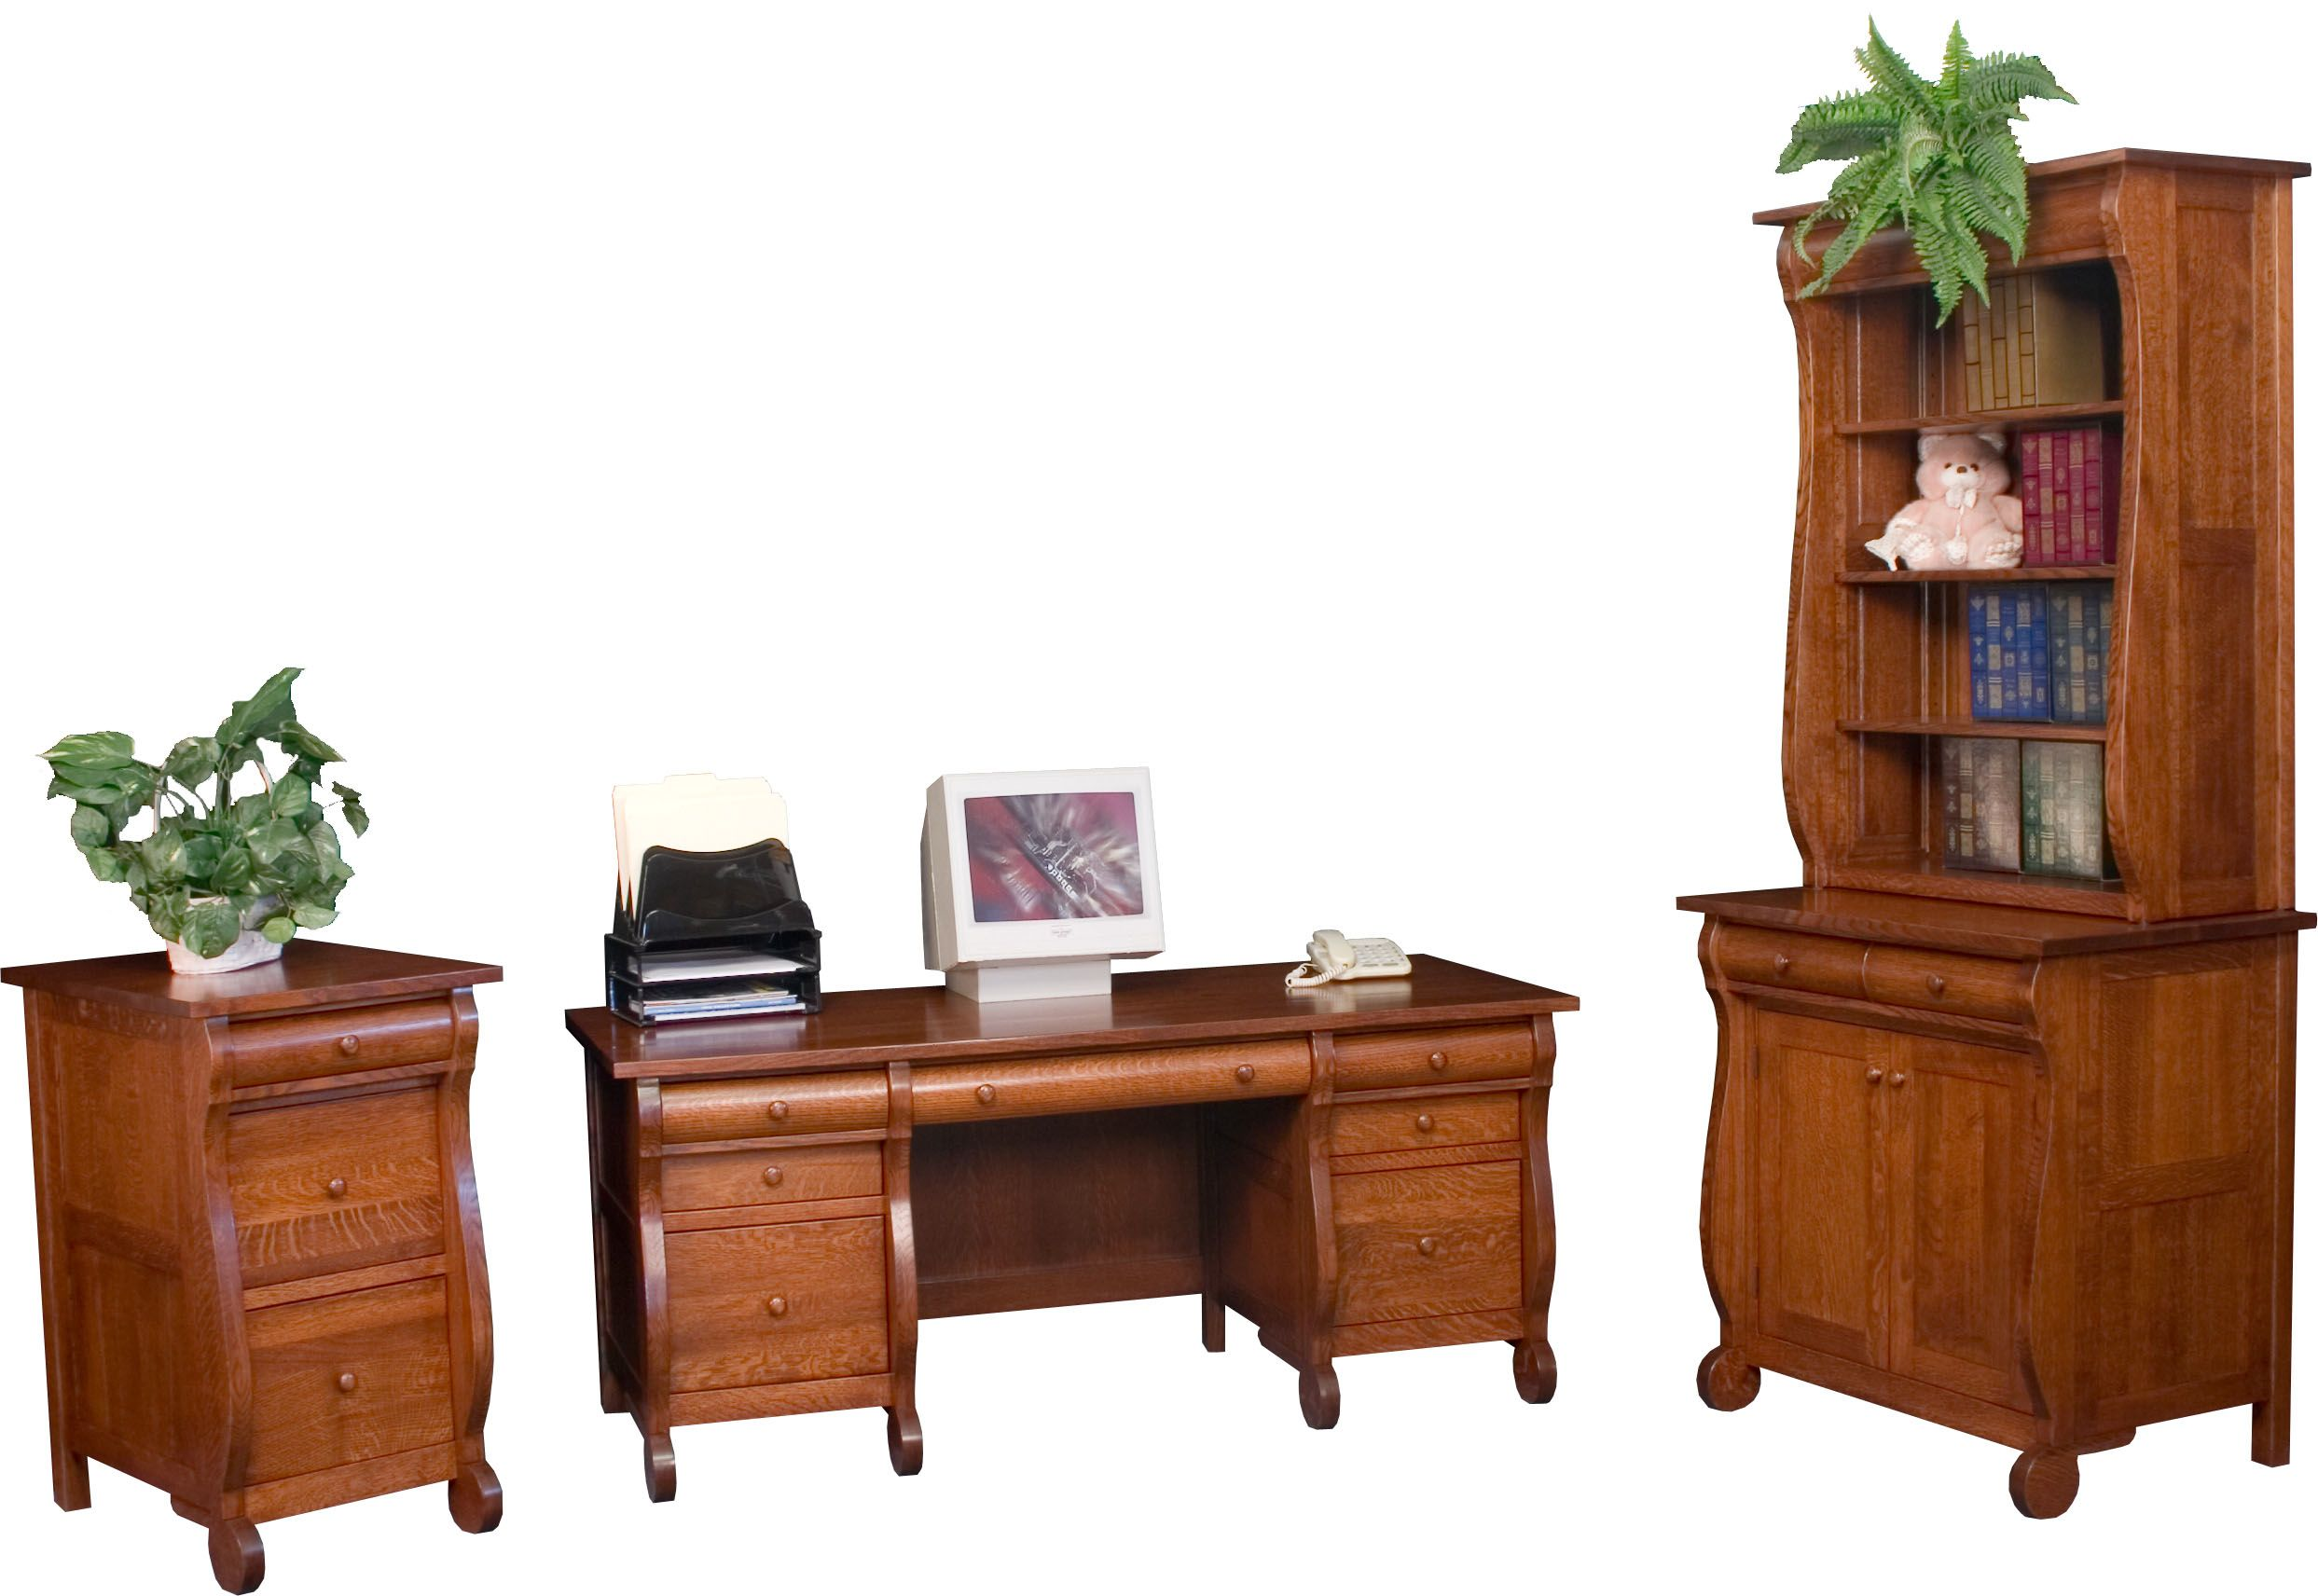 We Offer Amish Made Office Furniture In Mission, Traditional, And Shaker  Styles. For More Handcrafted Office Furniture See Us At Yoder Kansas And  Hutchinson ...